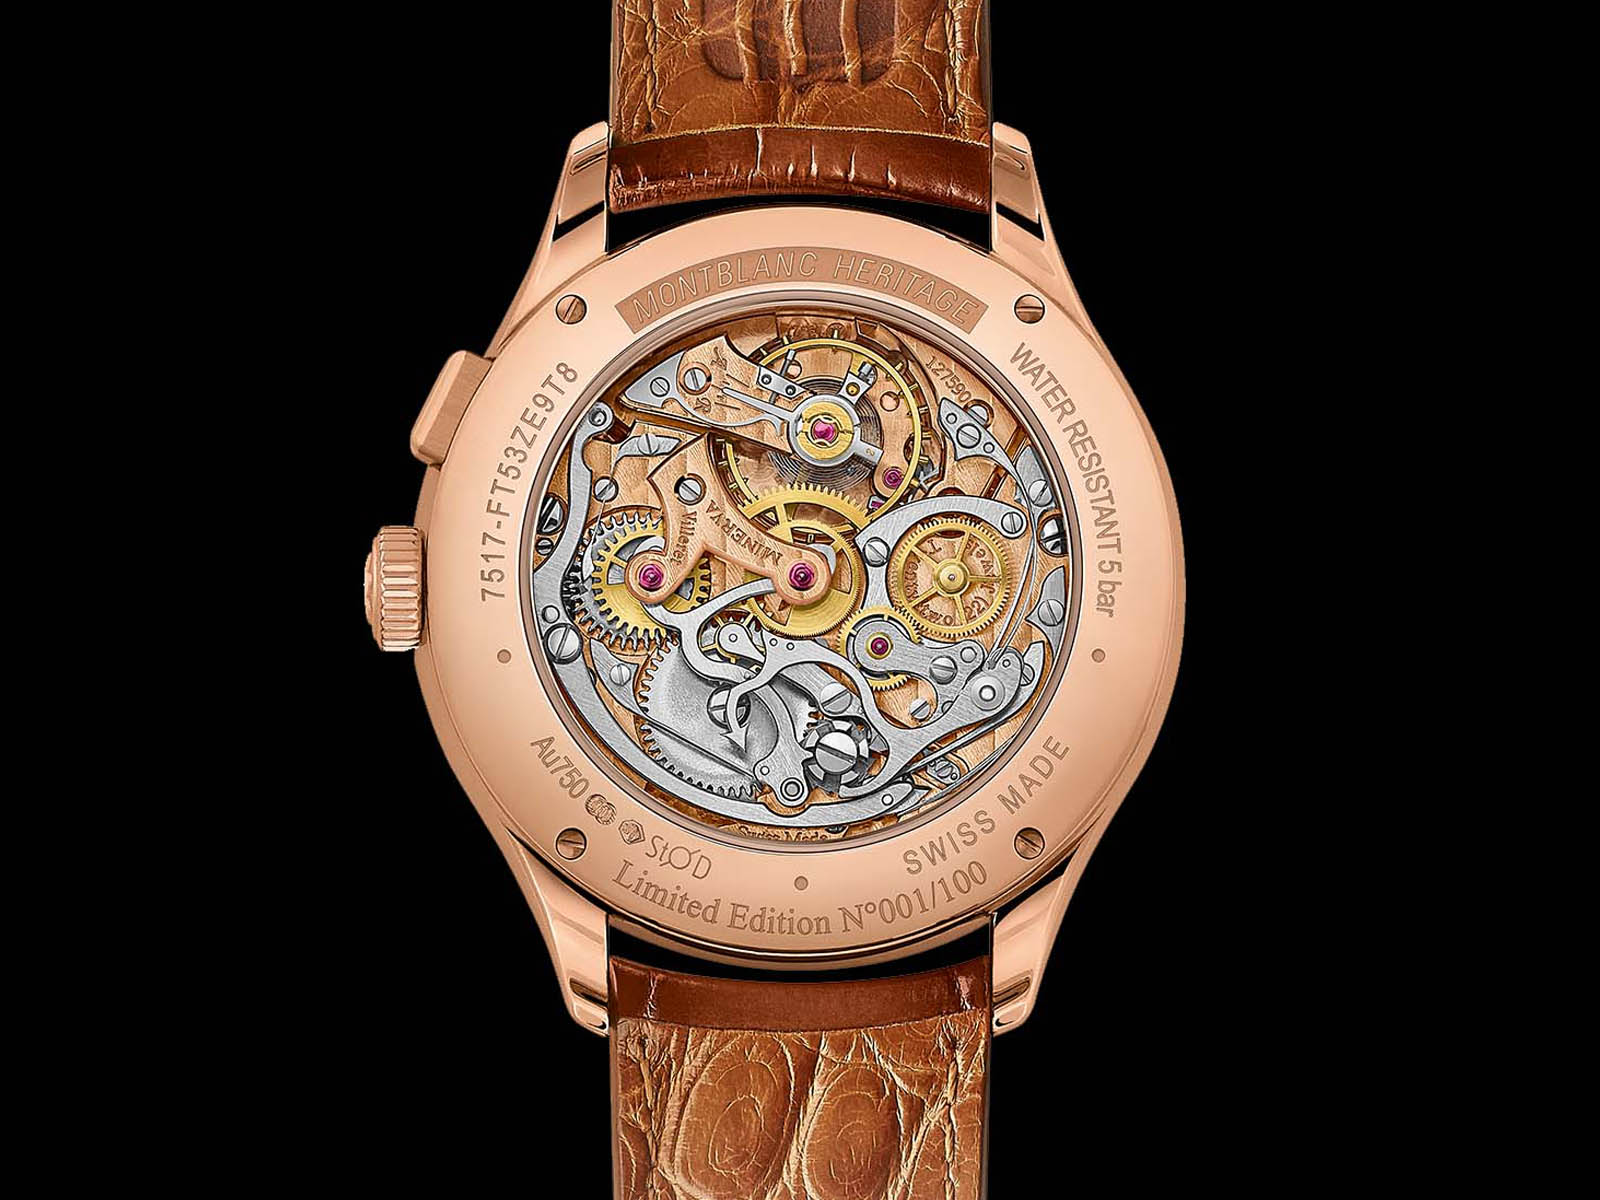 126095-montblanc-heritage-manufacture-pulsograph-limited-edition-rose-gold-4.jpg